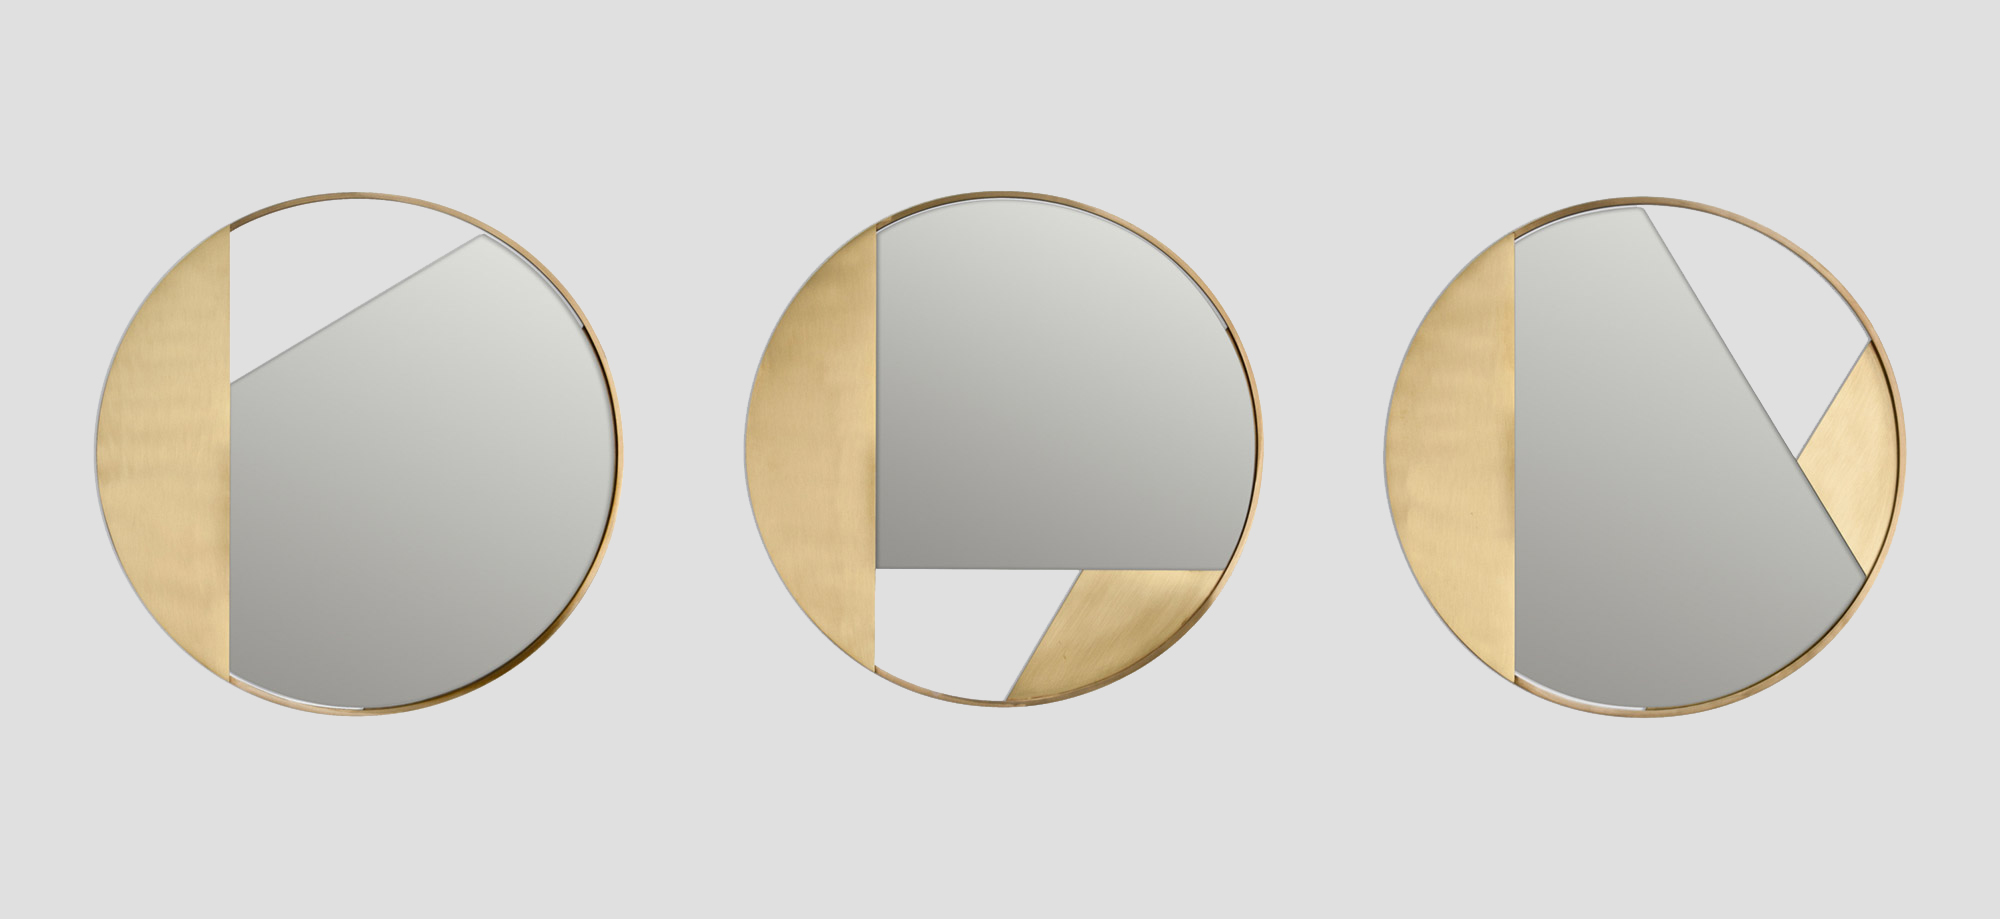 Revolution Mirror no.3 - Three wall mirrors characterized by a clean and rigorous design. The frame in brushed brass encloses a round mirror, mounted at different angles to create a new design every time. The balance created between the parts creates a delicate graphic effect that transforms the mirror into a sort of wall jewel. Handmade in Italy by skilled craftsmen. 